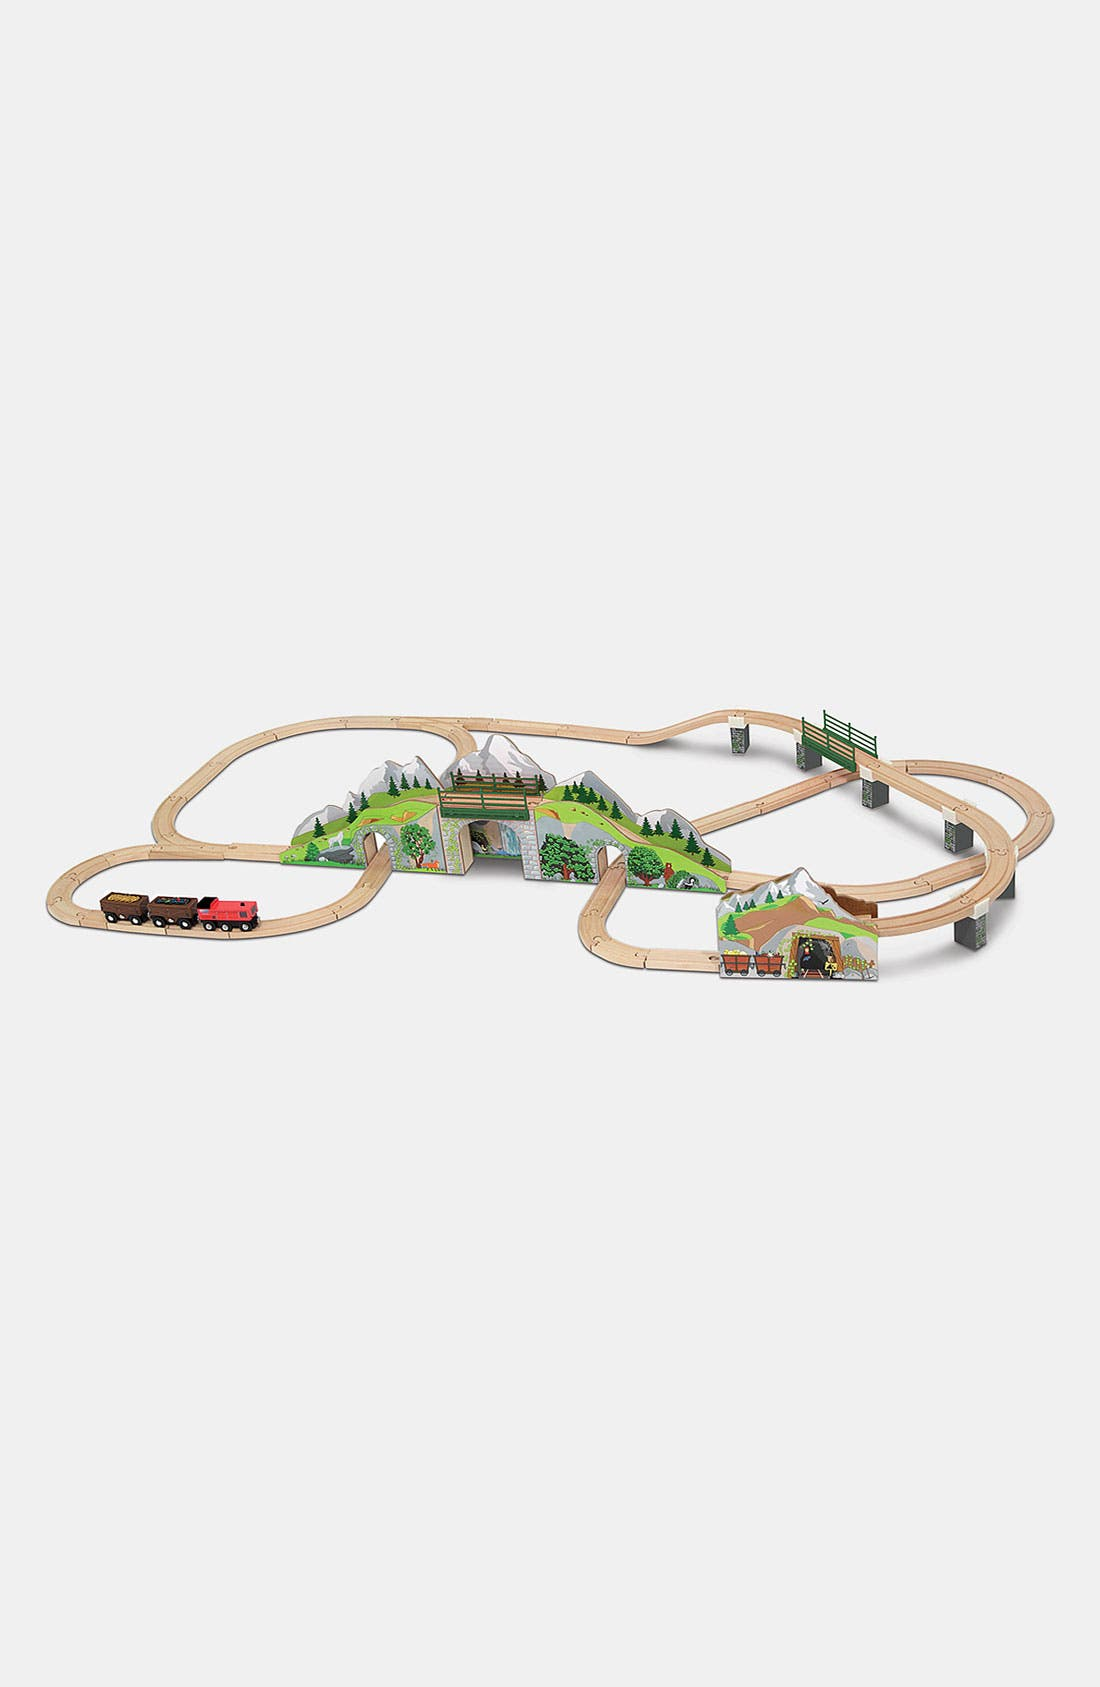 Melissa & Doug 'Mountain Tunnel' Wooden Train Toy